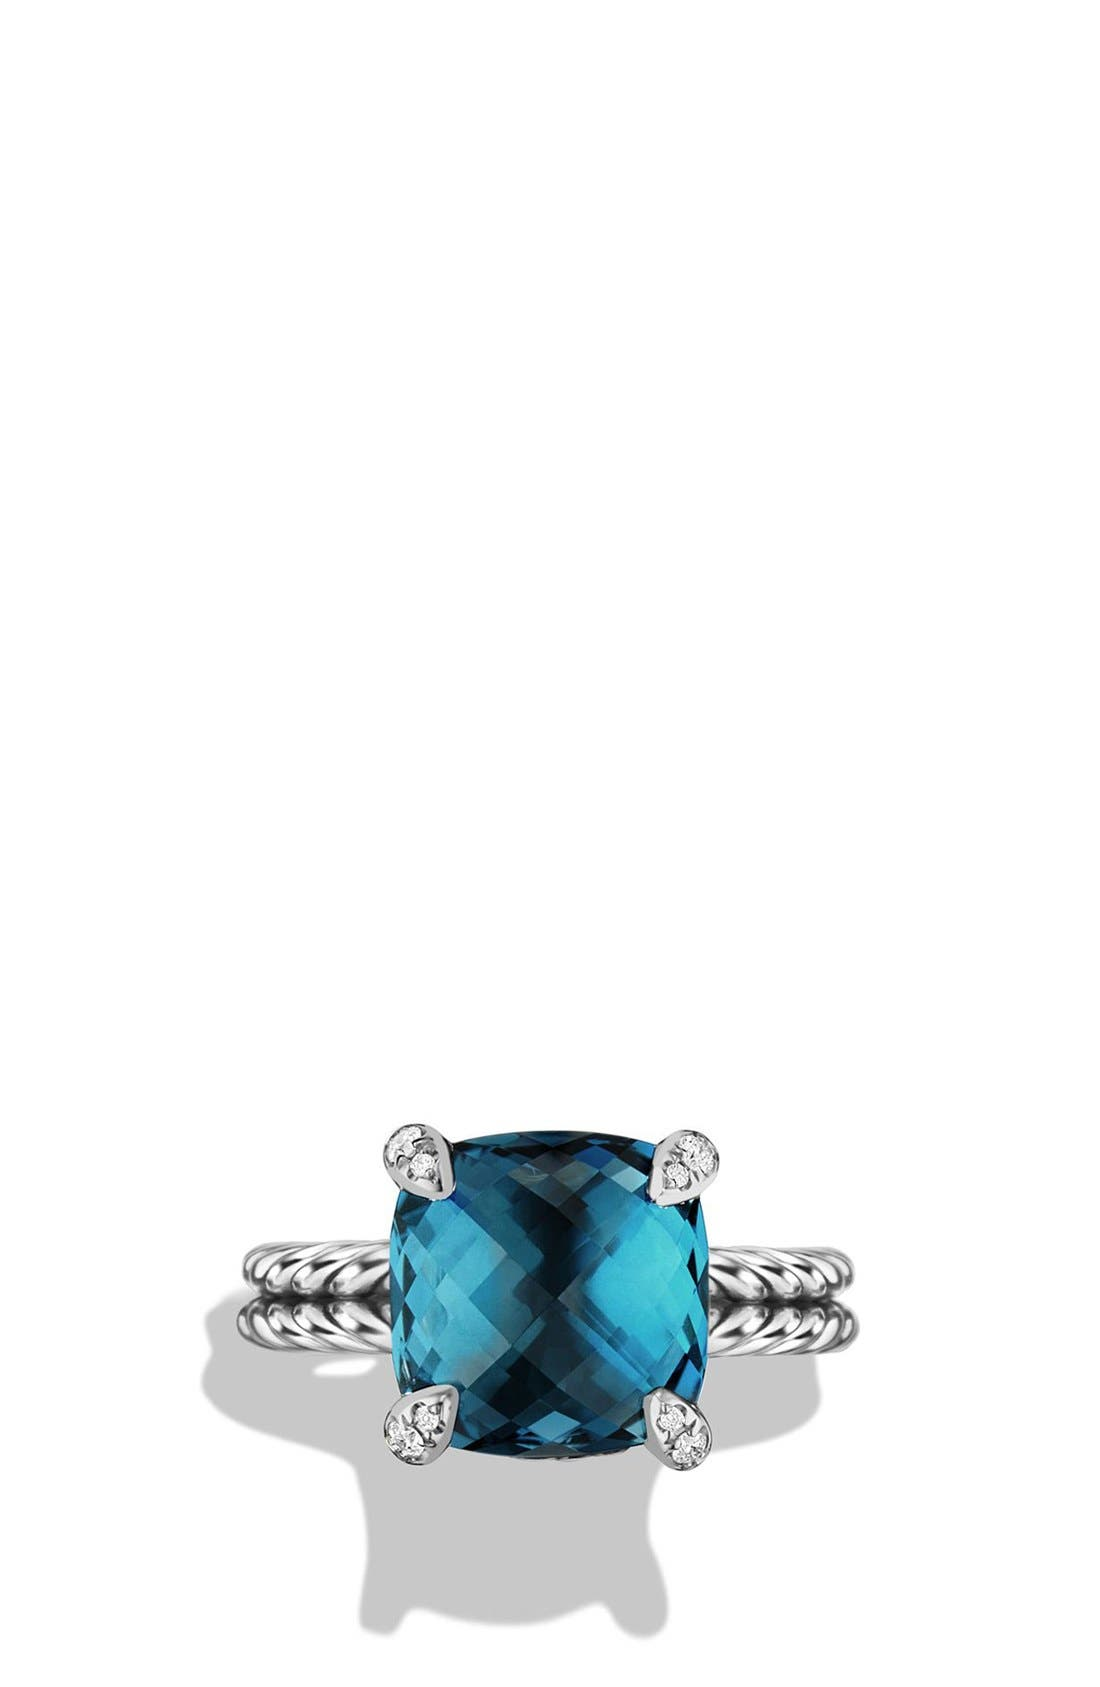 'Châtelaine' Ring with Semiprecious Stone and Diamonds,                             Alternate thumbnail 3, color,                             Silver/ Hampton Blue Topaz